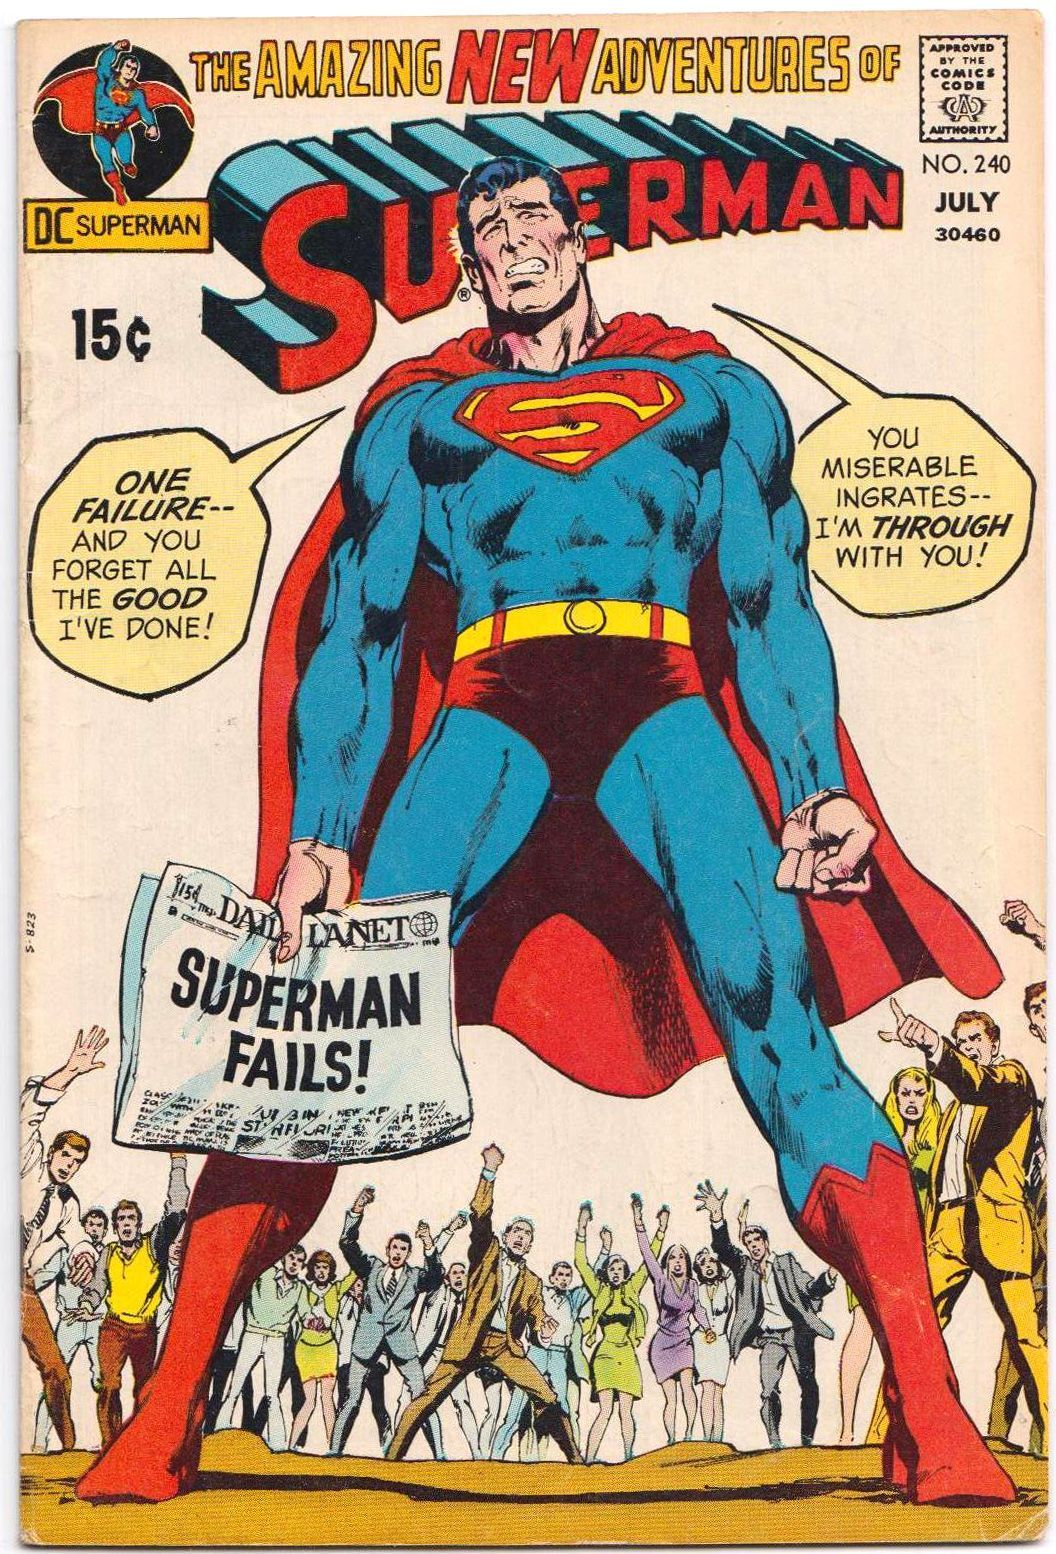 The Grooviest Covers Of All Time Neal Adams Covers Superman S